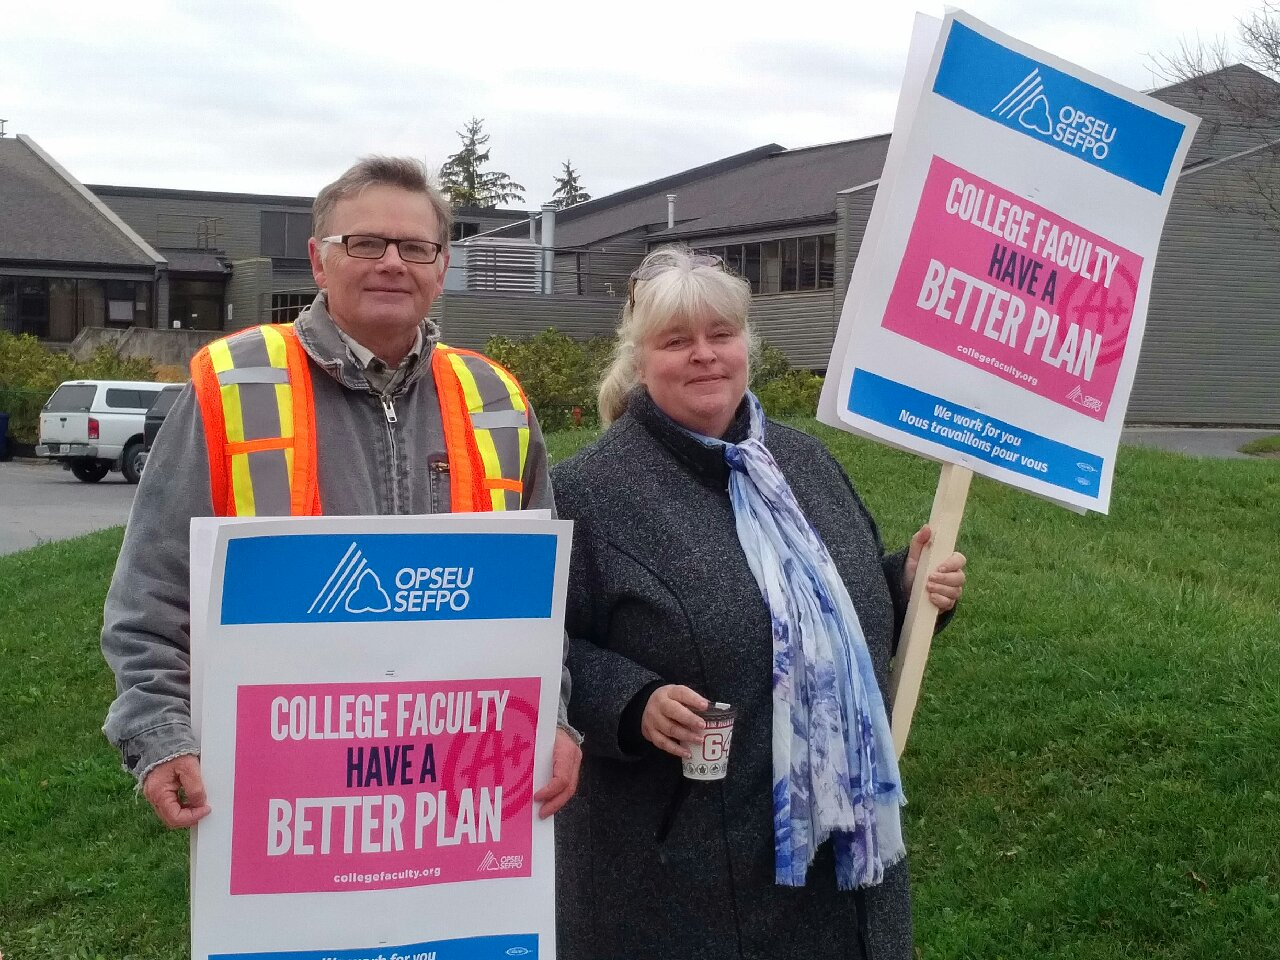 Frost students out in cold as union fights precarious work